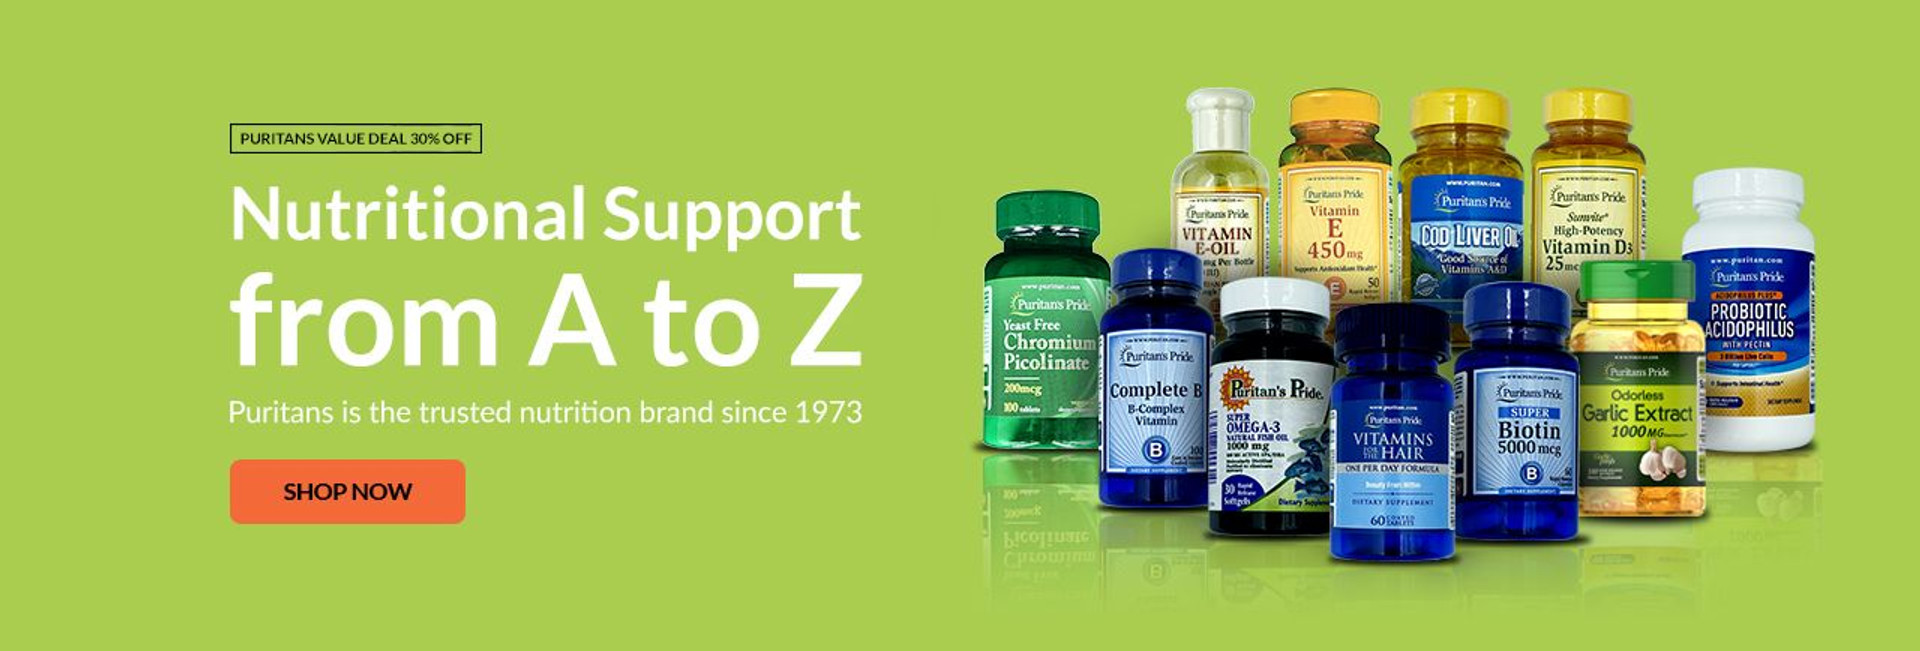 Puritans Pride Vitamins Offers Nutritional Support from A to Z